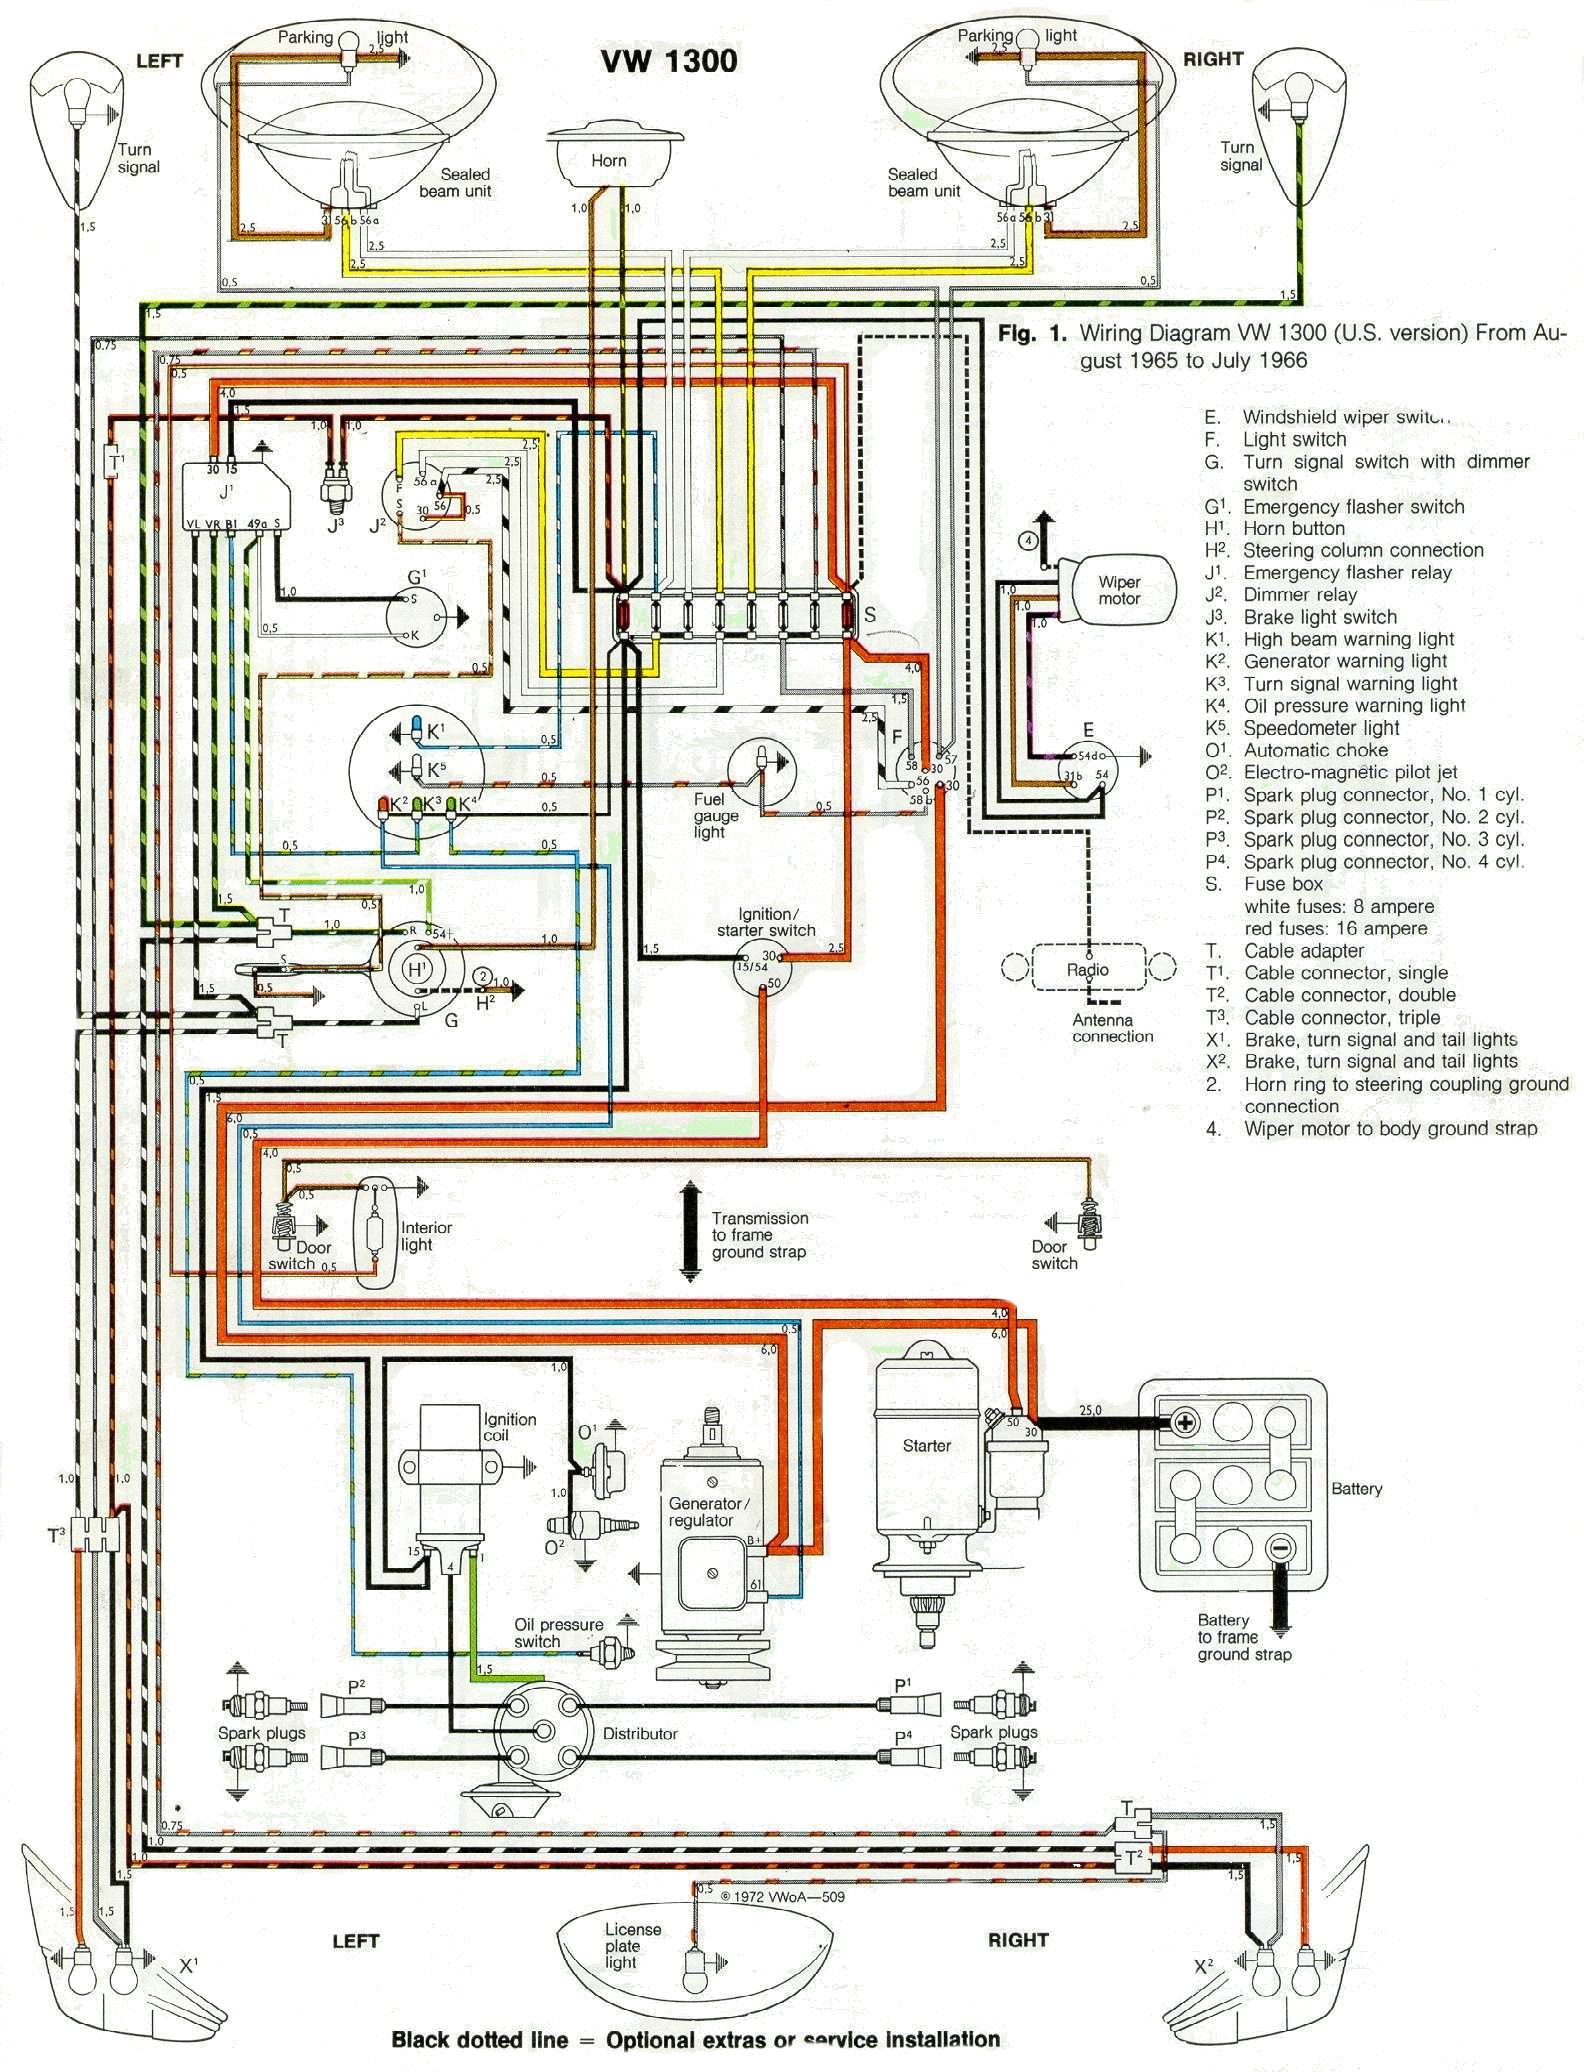 hight resolution of 2000 beetle wiring schematic best wiring diagram 2000 vw beetle ac wiring diagram vw beetle wiring diagram 2000